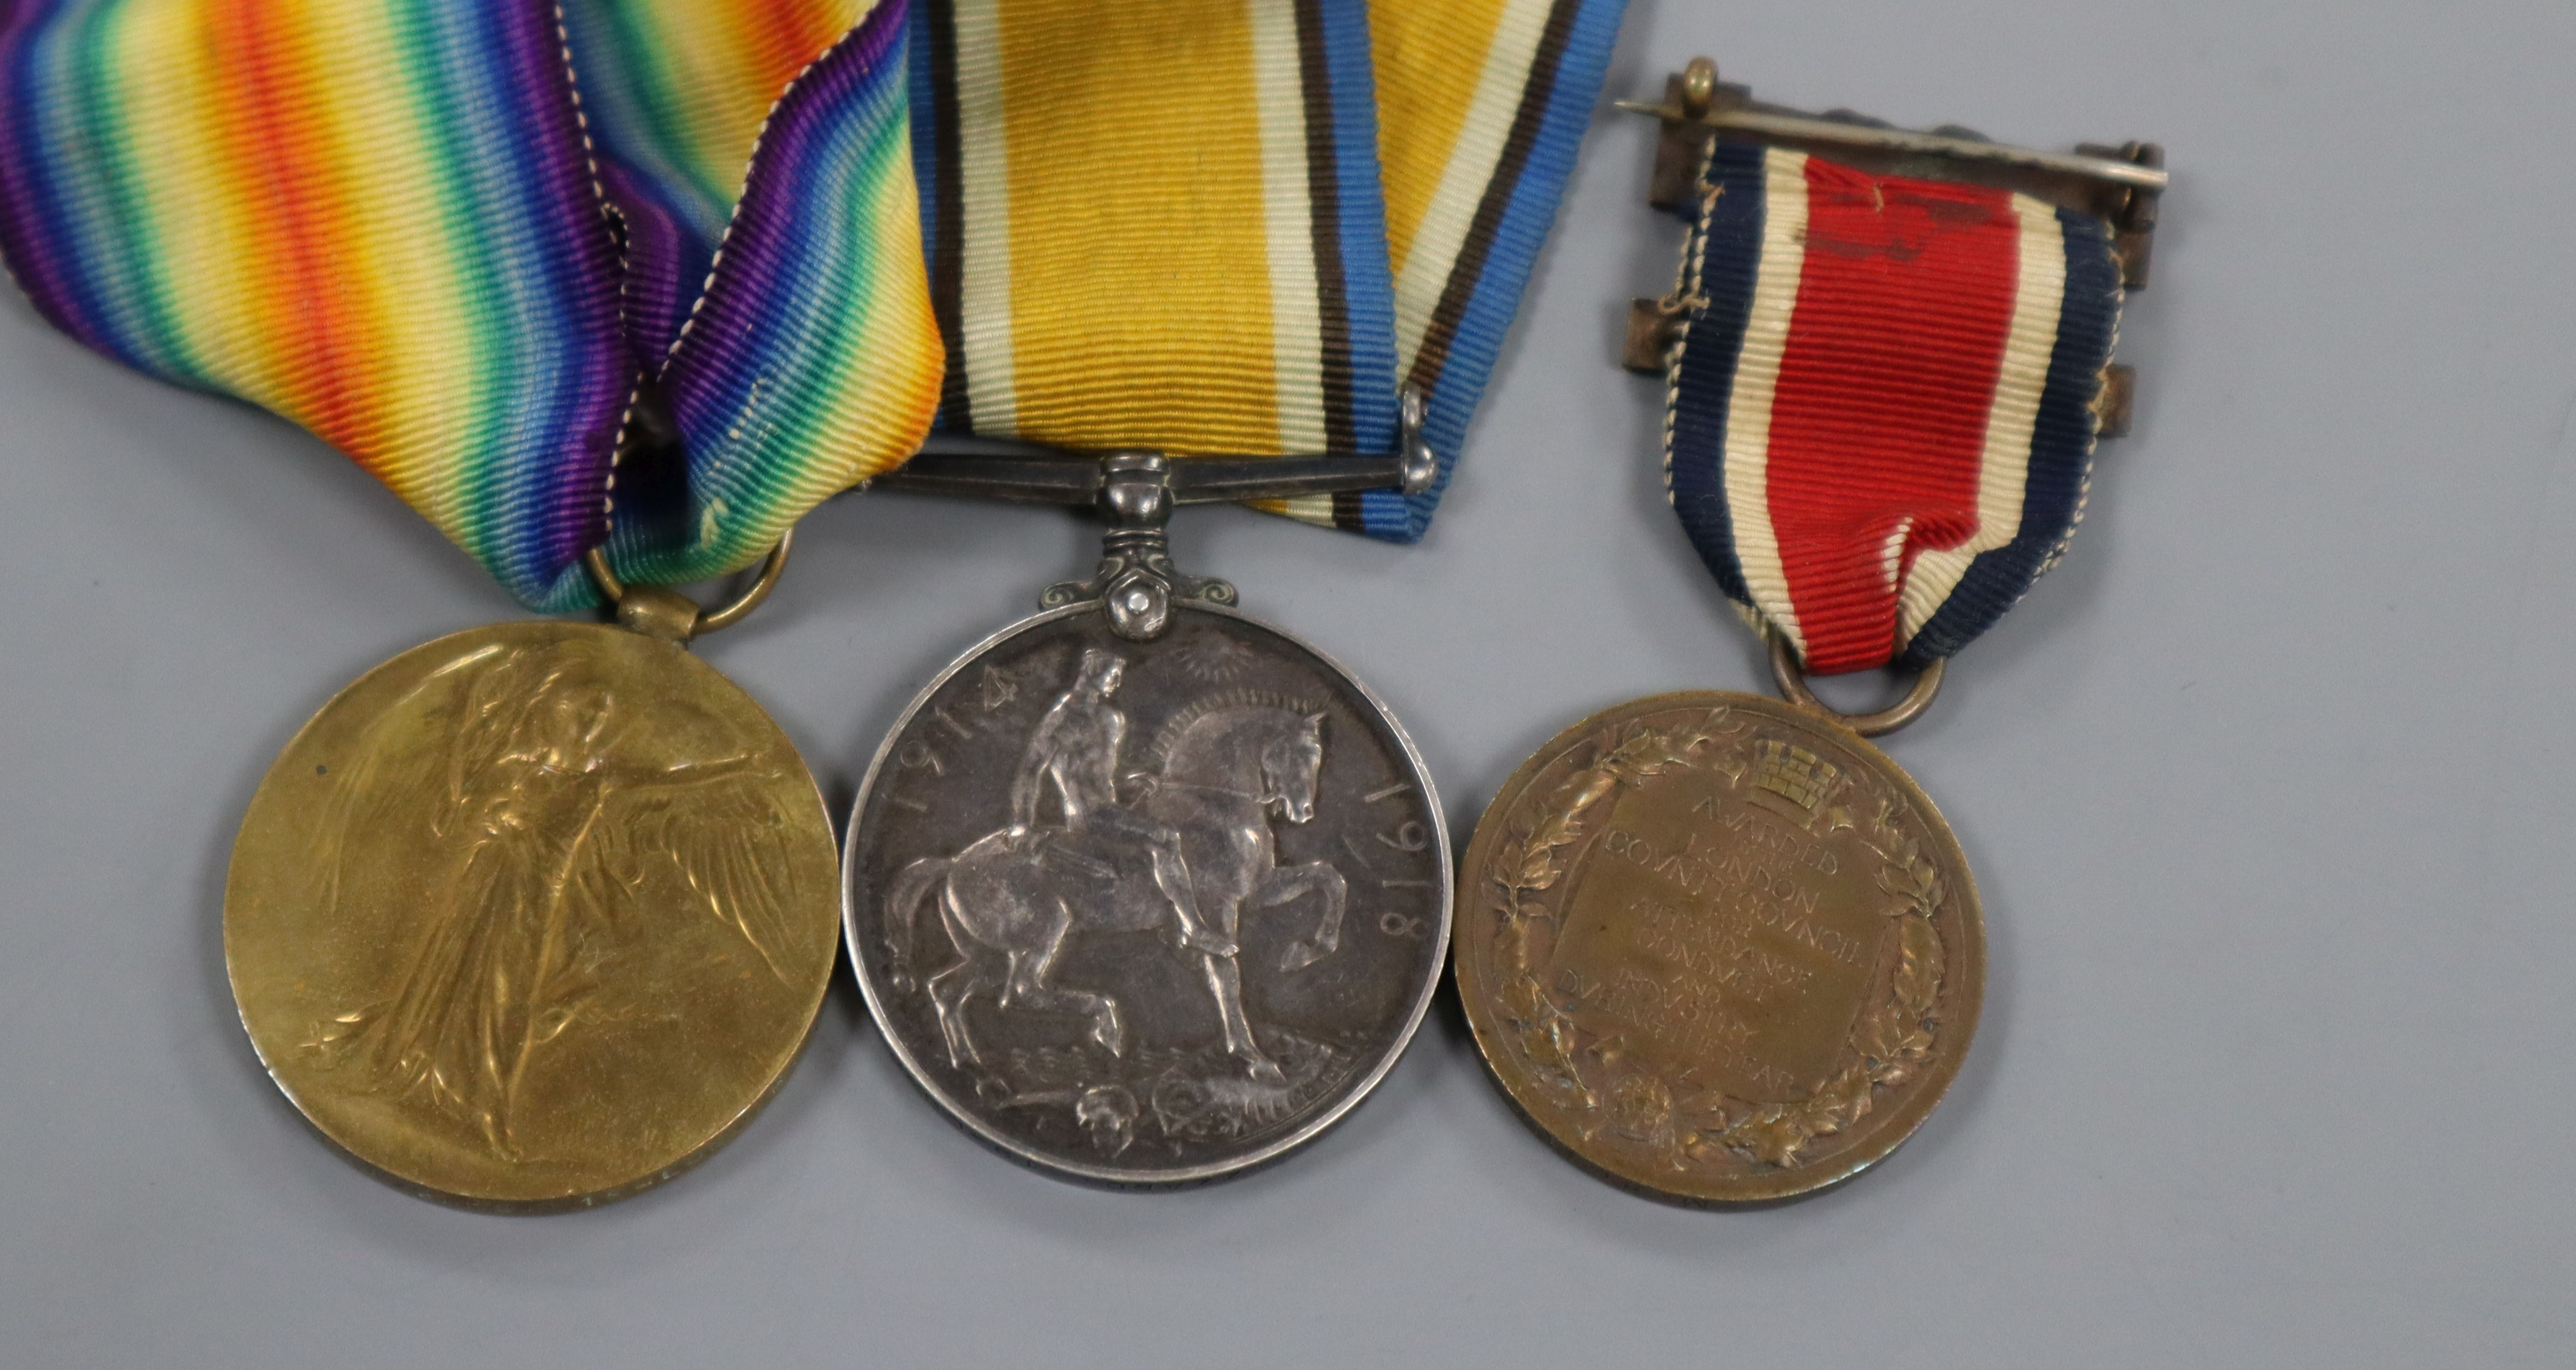 Lot 313 - WWI War and Victory medal duo to Pte E G Izzard, 19th Lond. R. and a London County Council King's